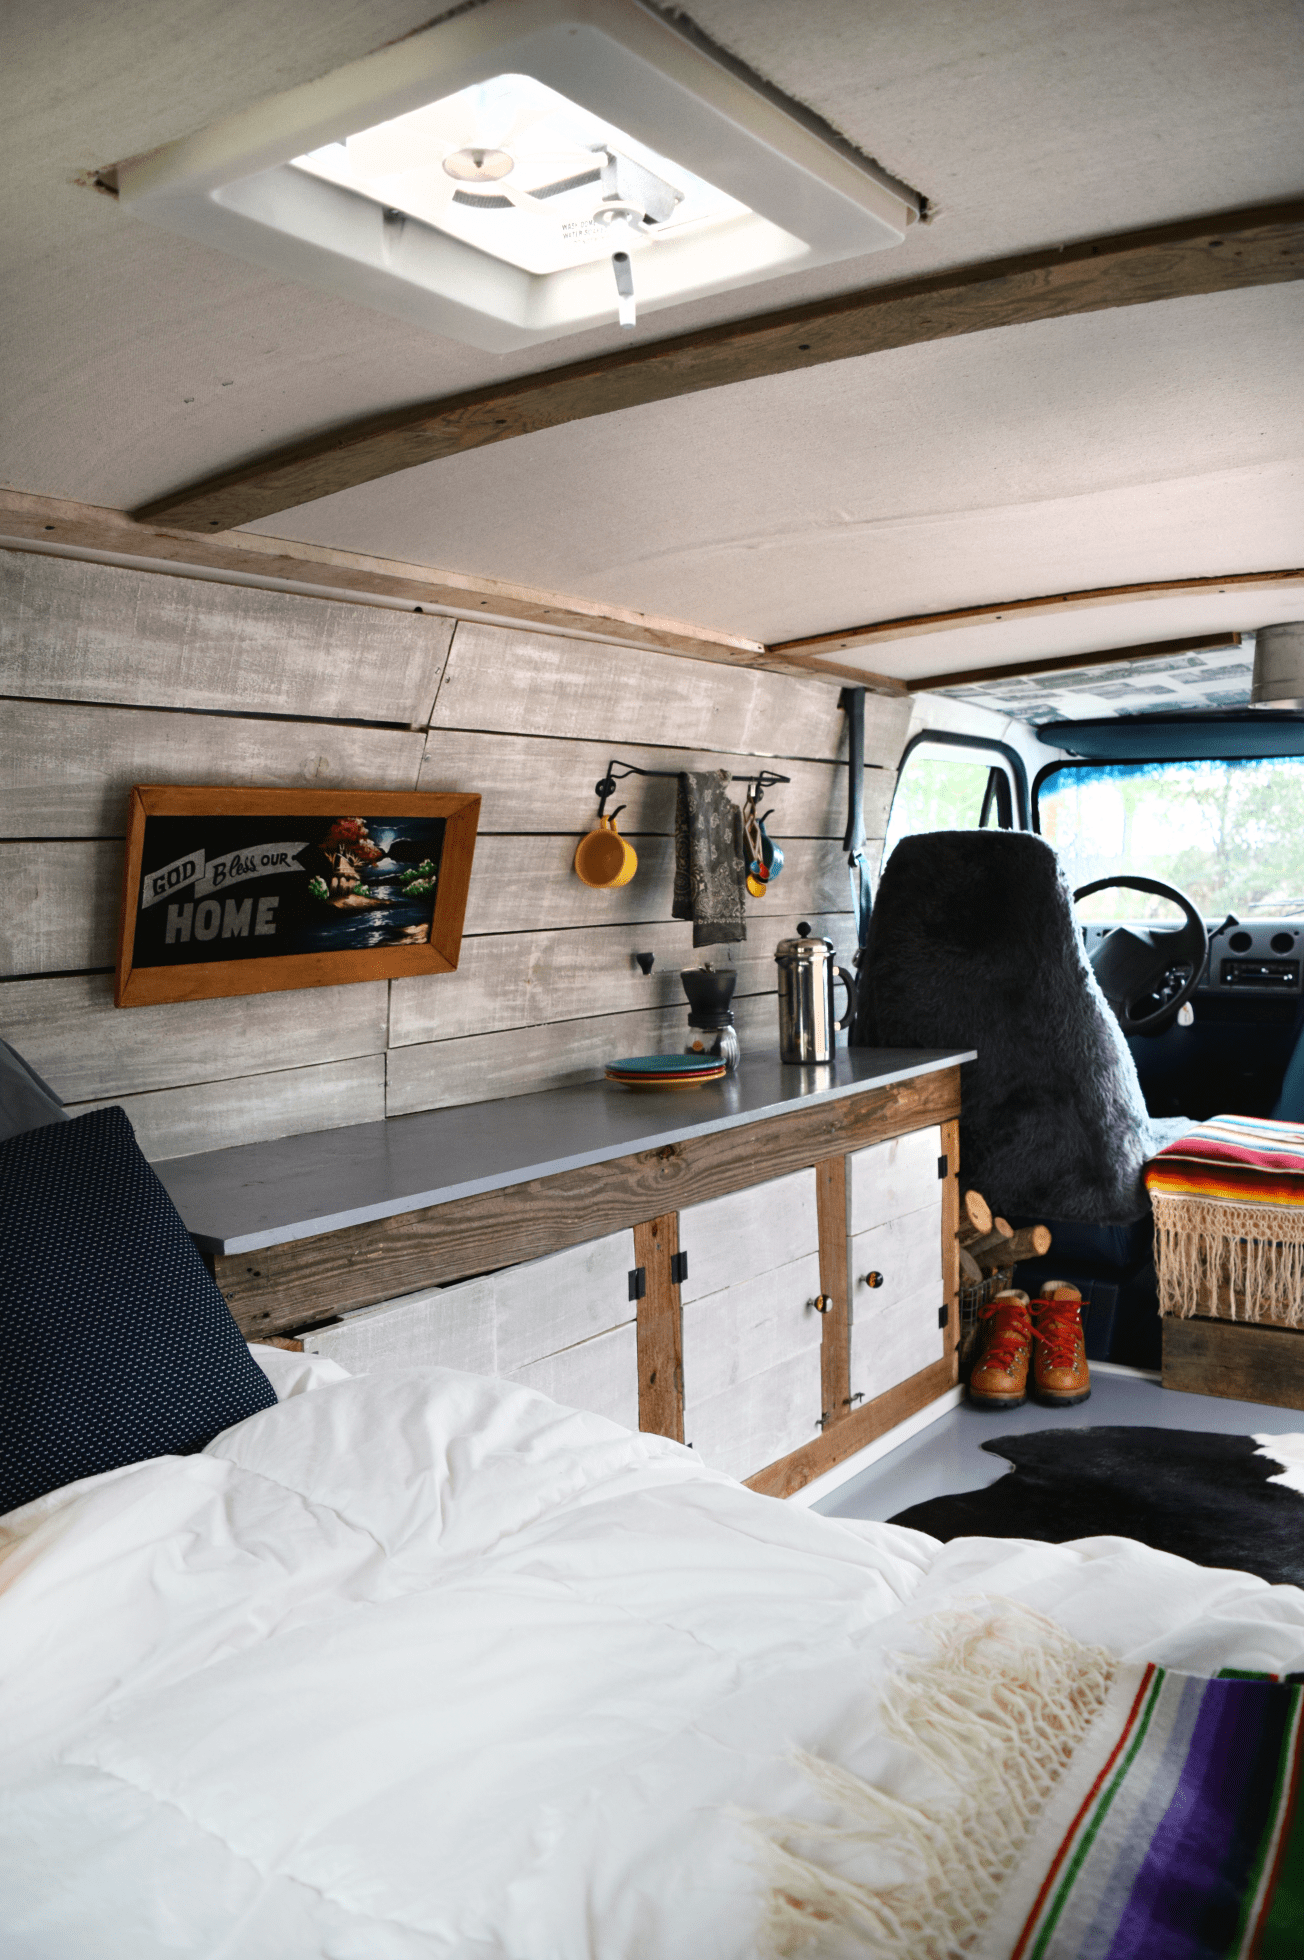 Simple Van Turned Camper Fairly Inexpensively